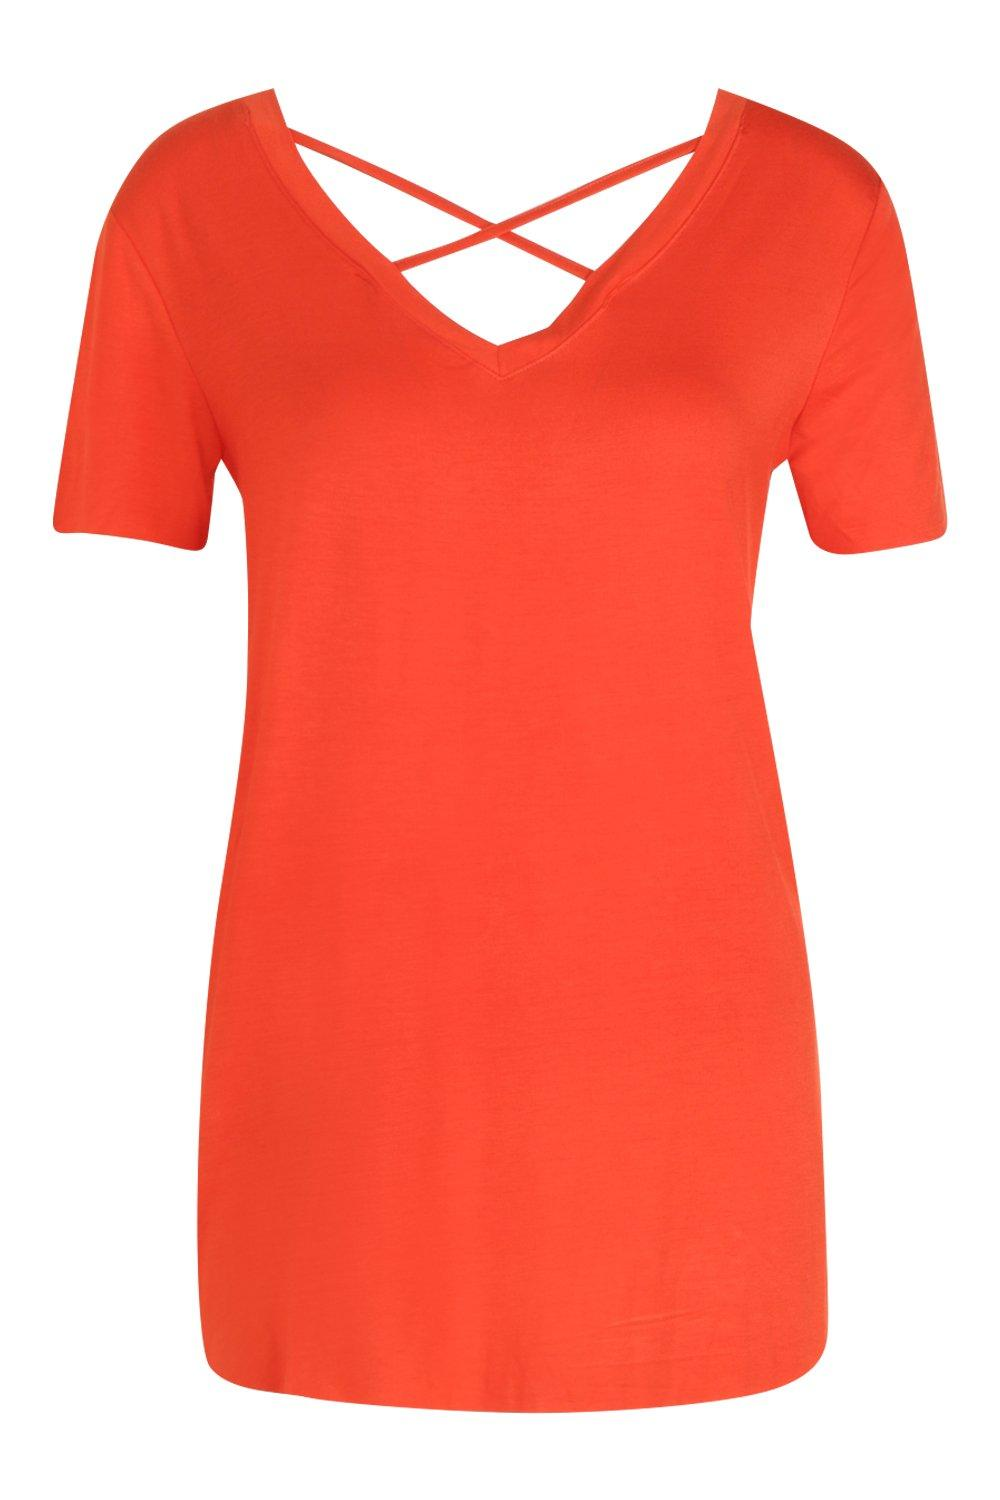 T red Cage Strap Cross Shirt xvEqwT084